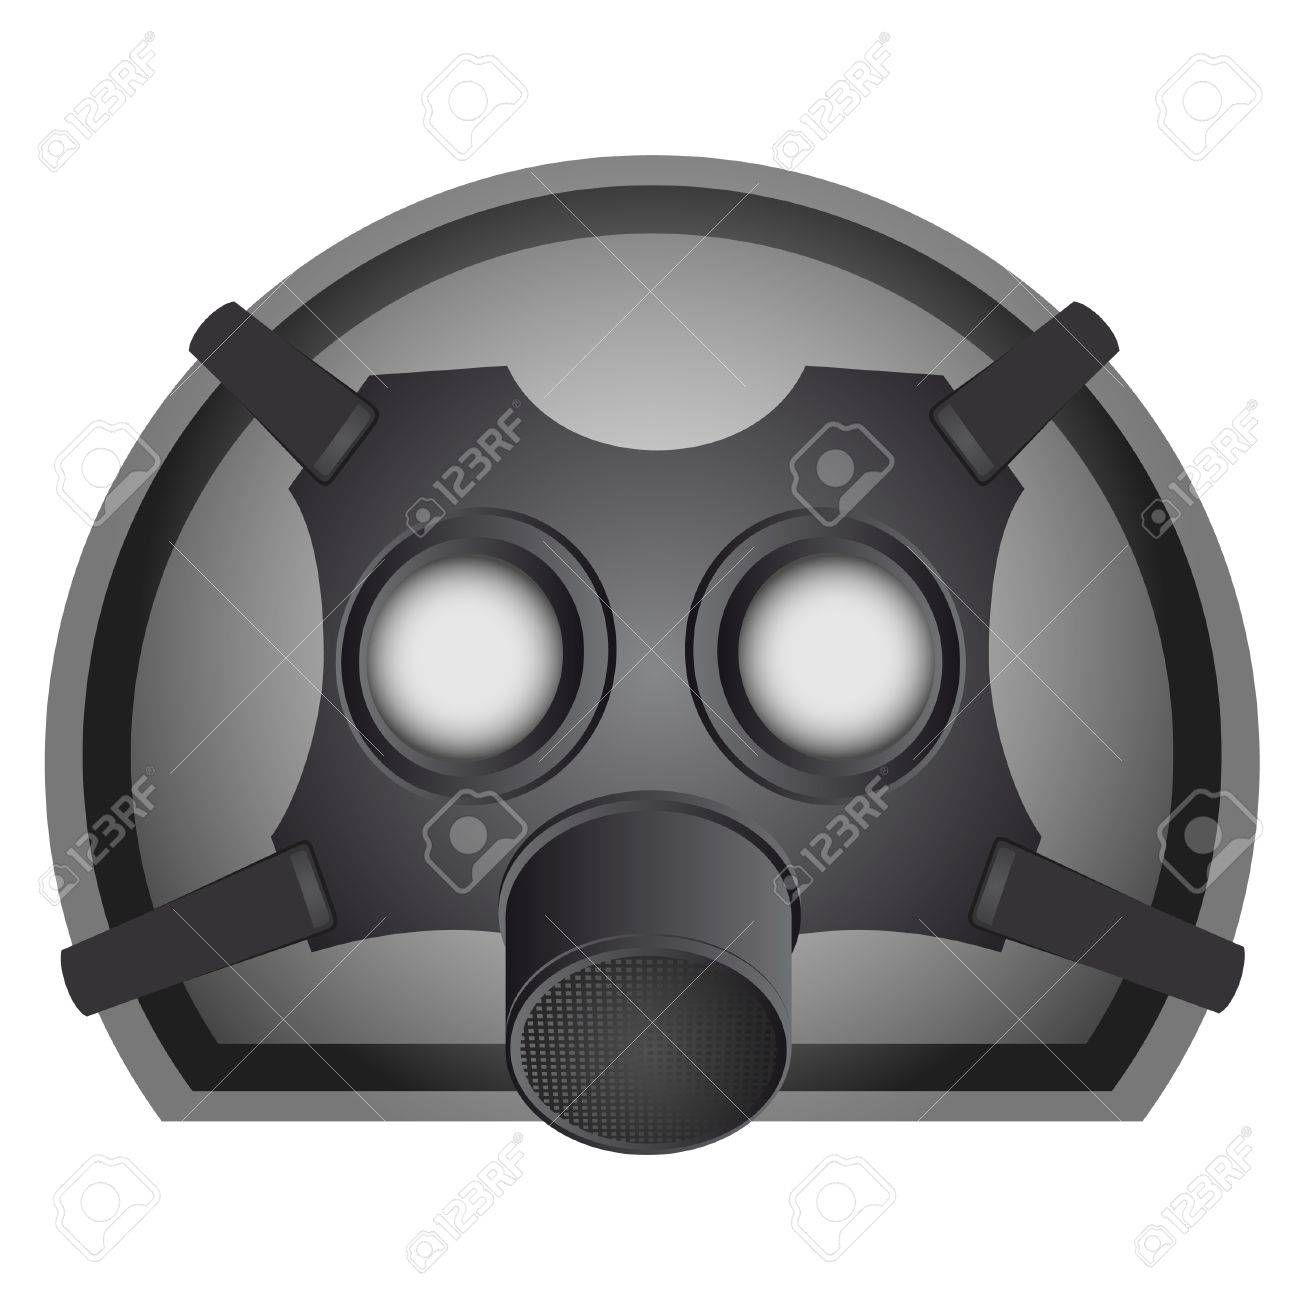 Drawing of a mask to protect against pandemic Stock Vector - 9425440